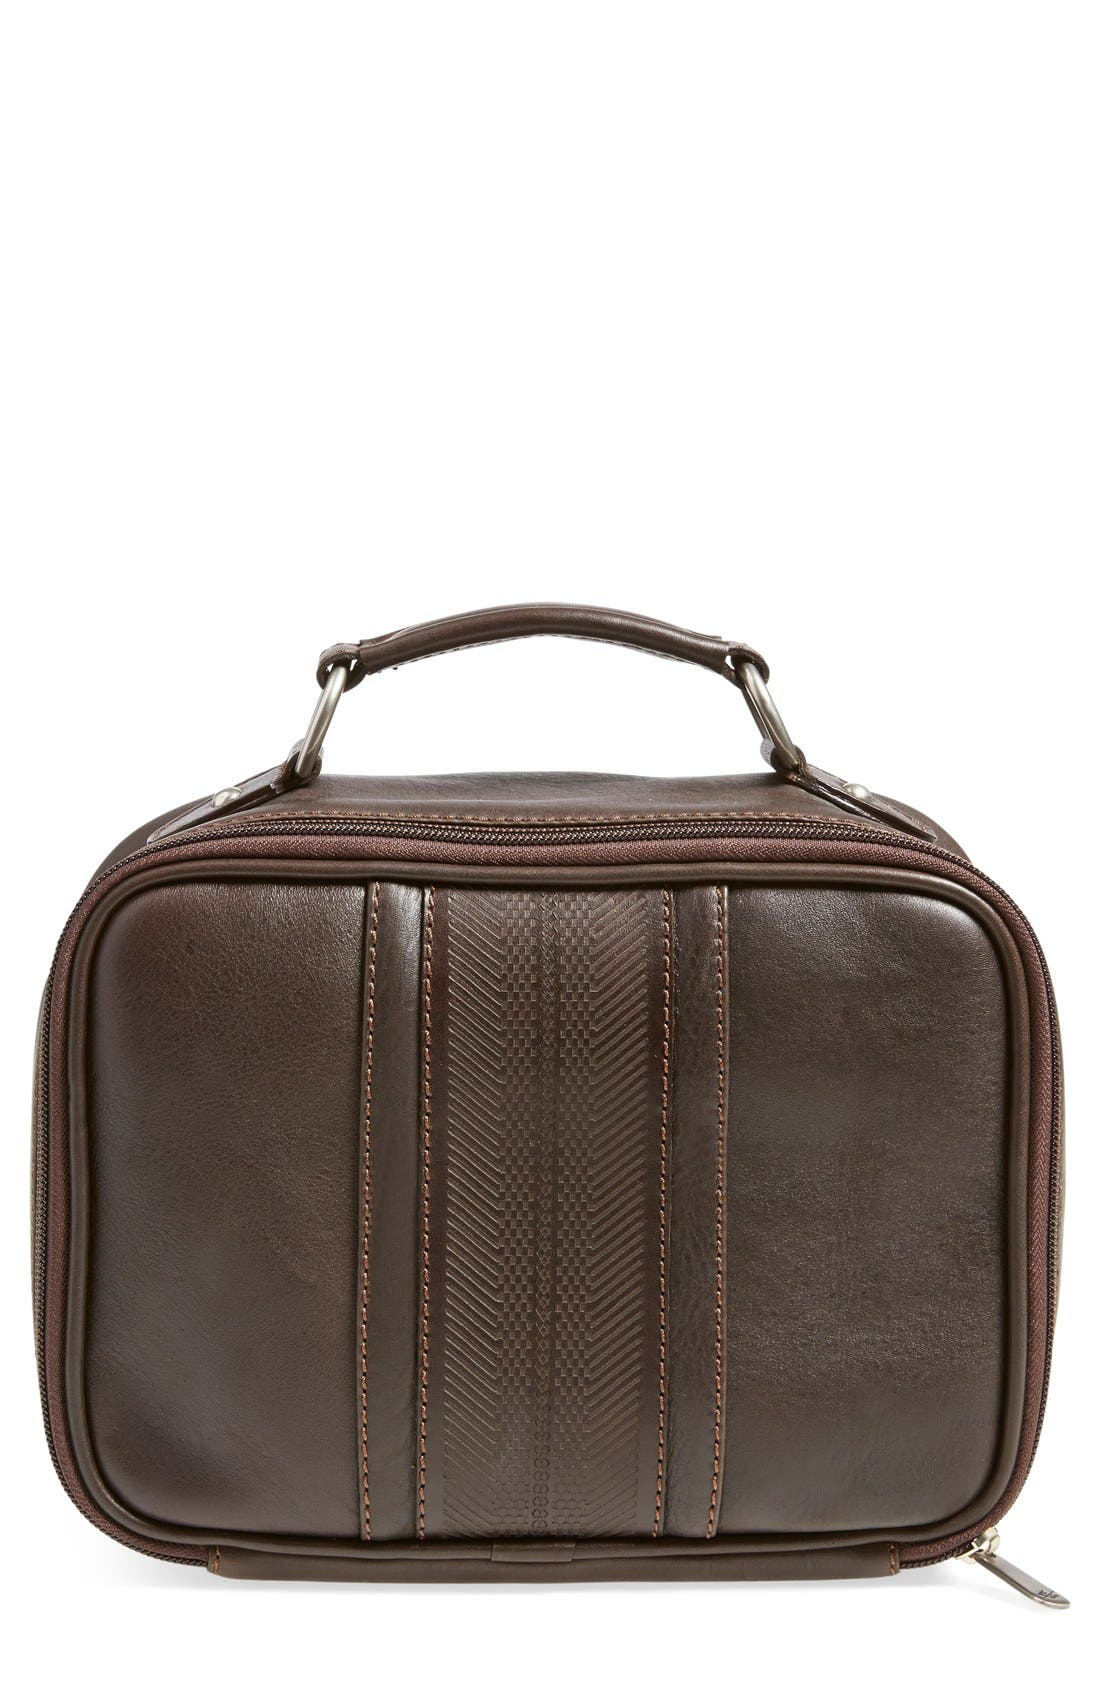 Martin Dingman 'Rudyard' Leather Travel Kit